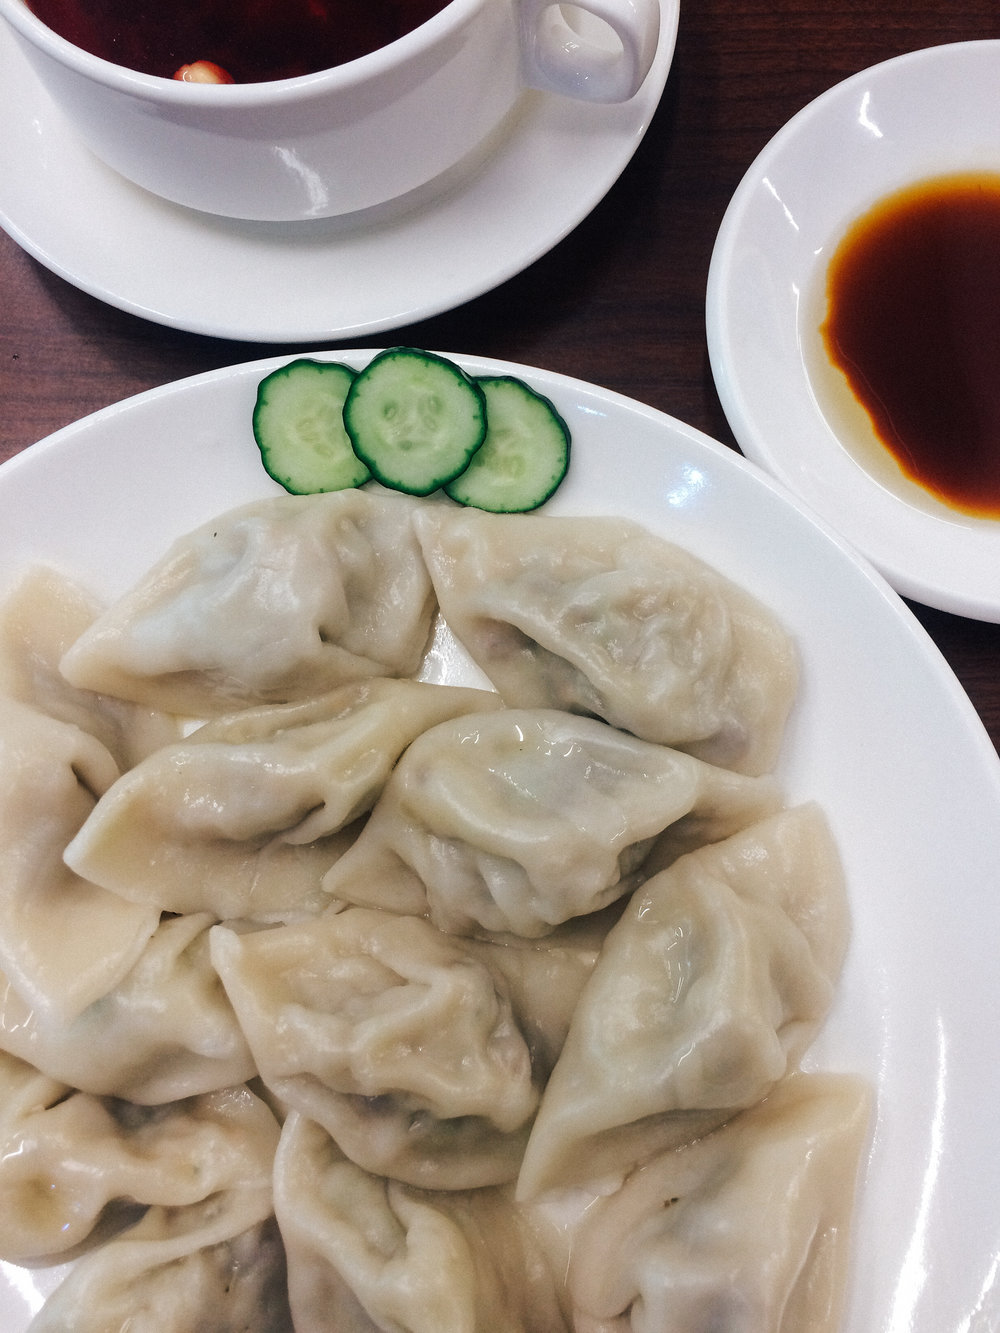 Dumplings from Tai Lai